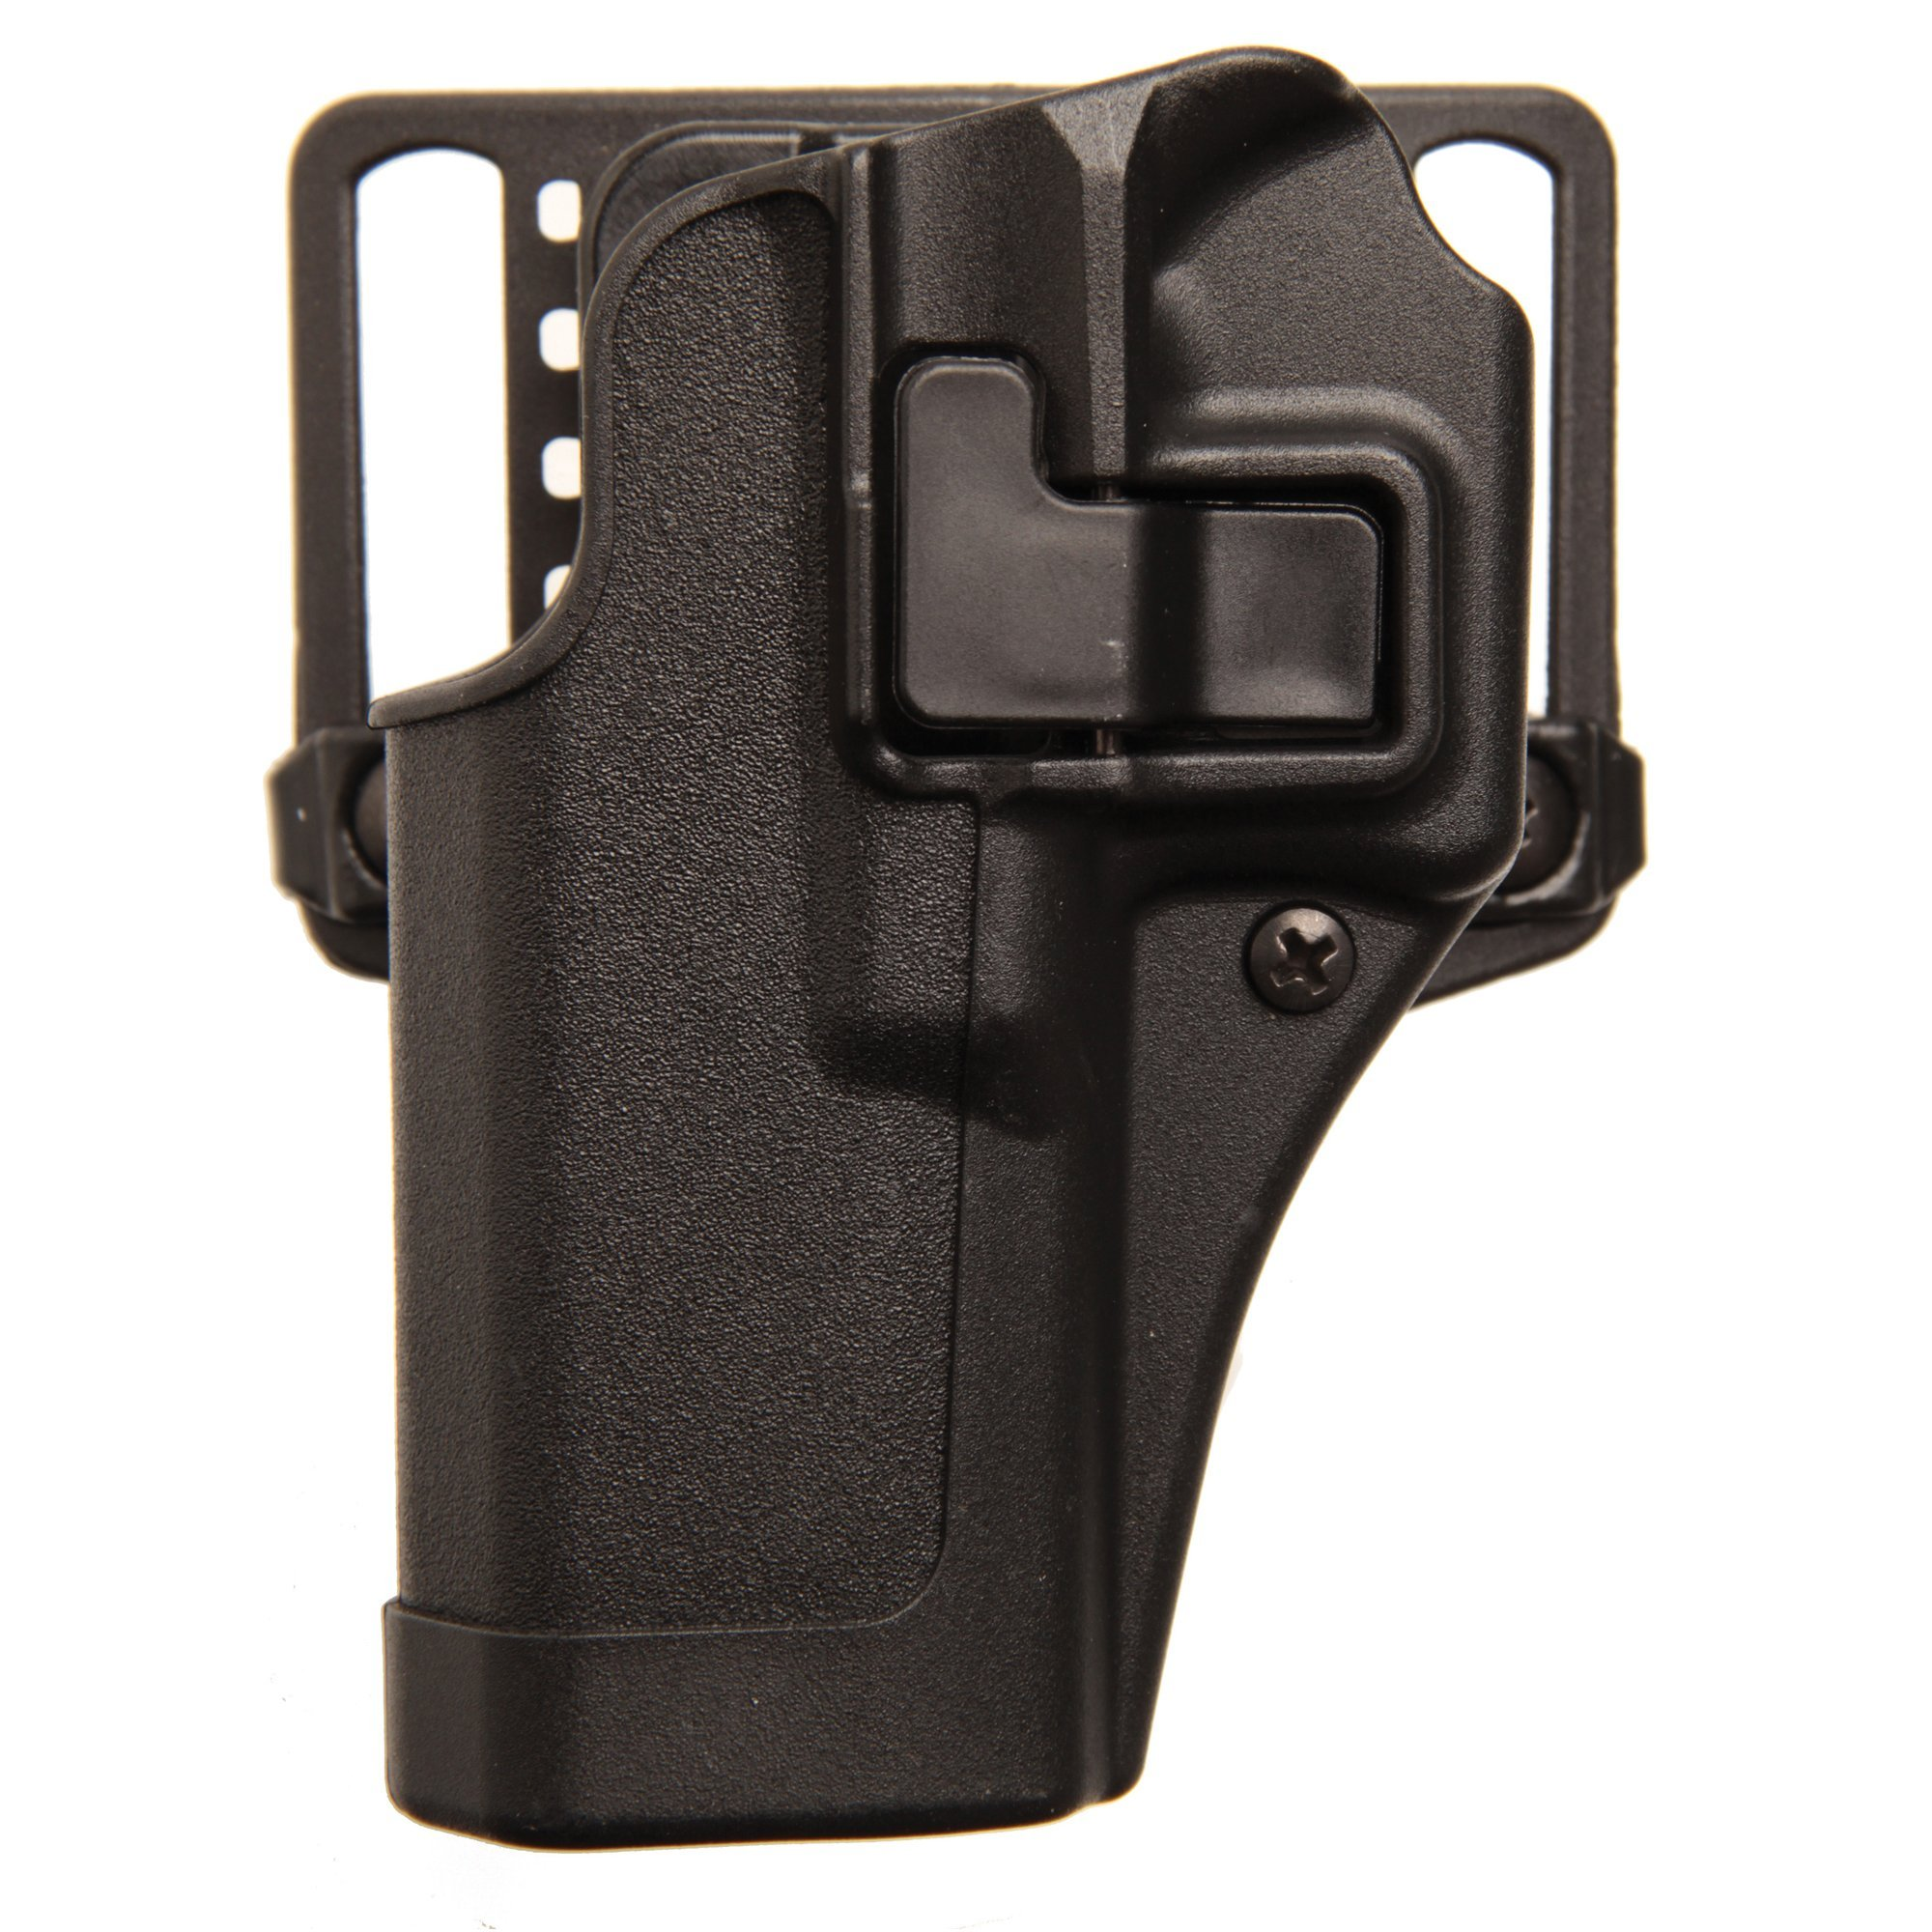 BLACKHAWK SERPA Concealment Holster - Matte Finish, Size 05, Right Hand, (Sig 228/229/250DC w or w/o rail)